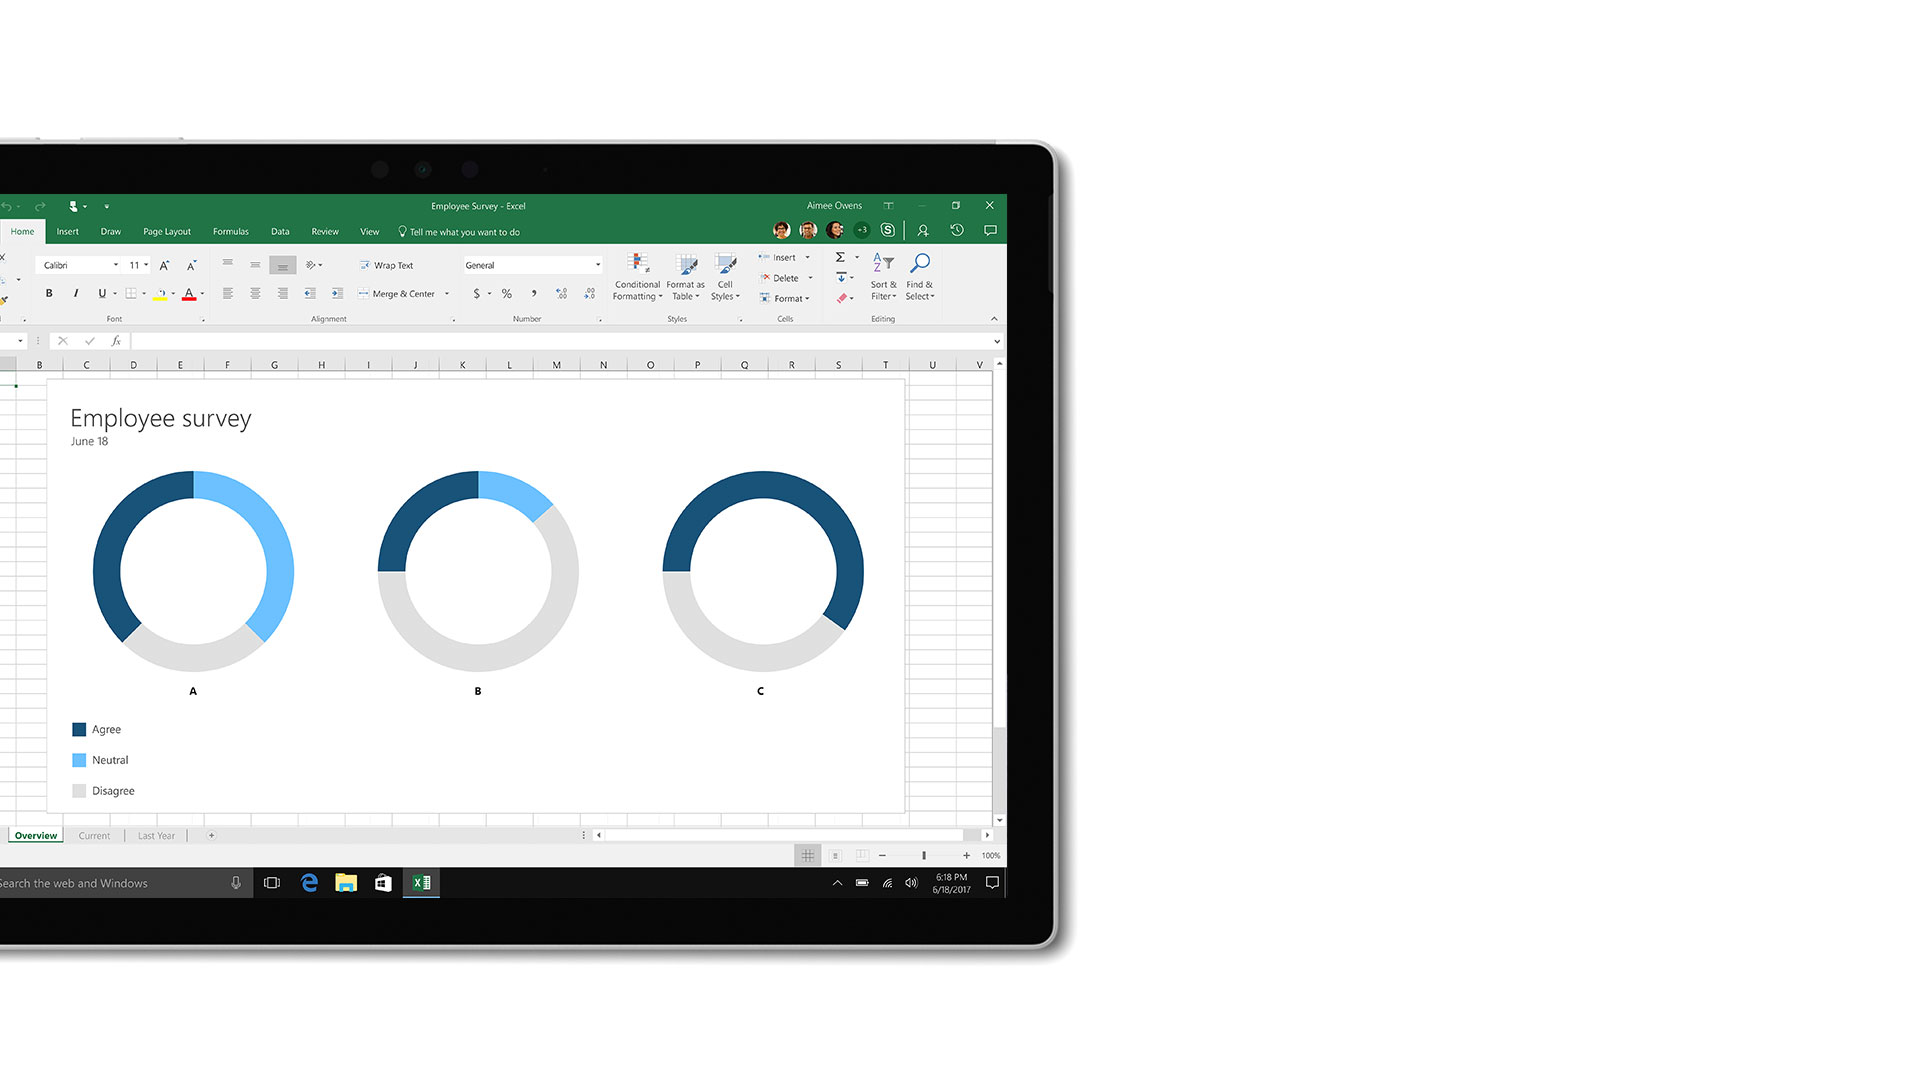 Imagem da interface de utilizador do Microsoft Excel